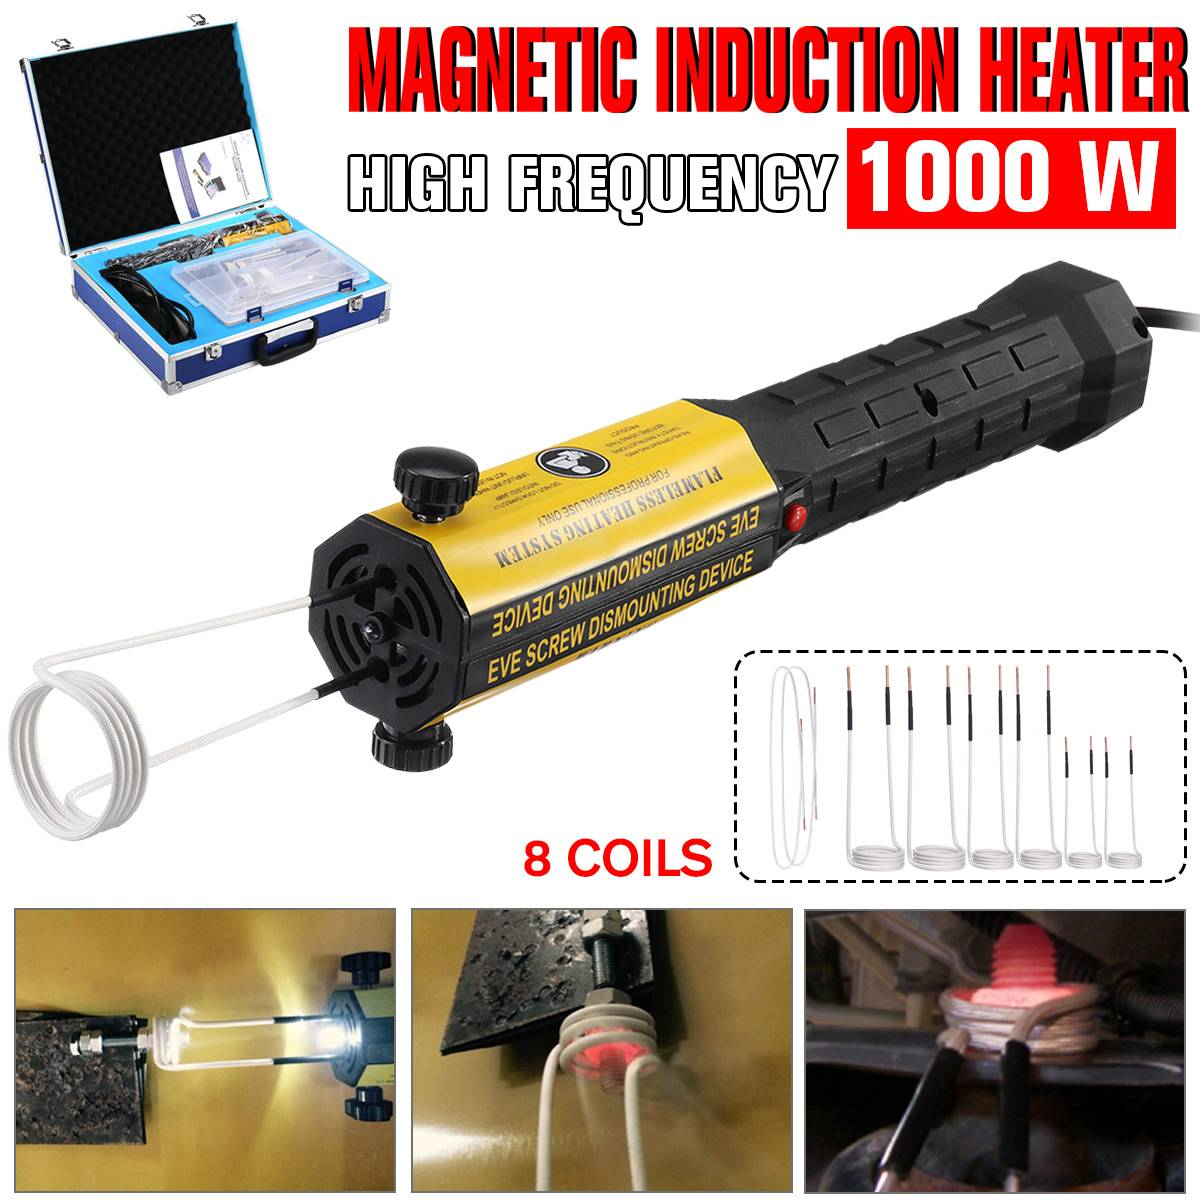 Induction Heater 110V/220V 8 Coils Bolt Heat Remover Tool Kit Flameless Magnetic Induction Heater Car Disassembly Repair Tool